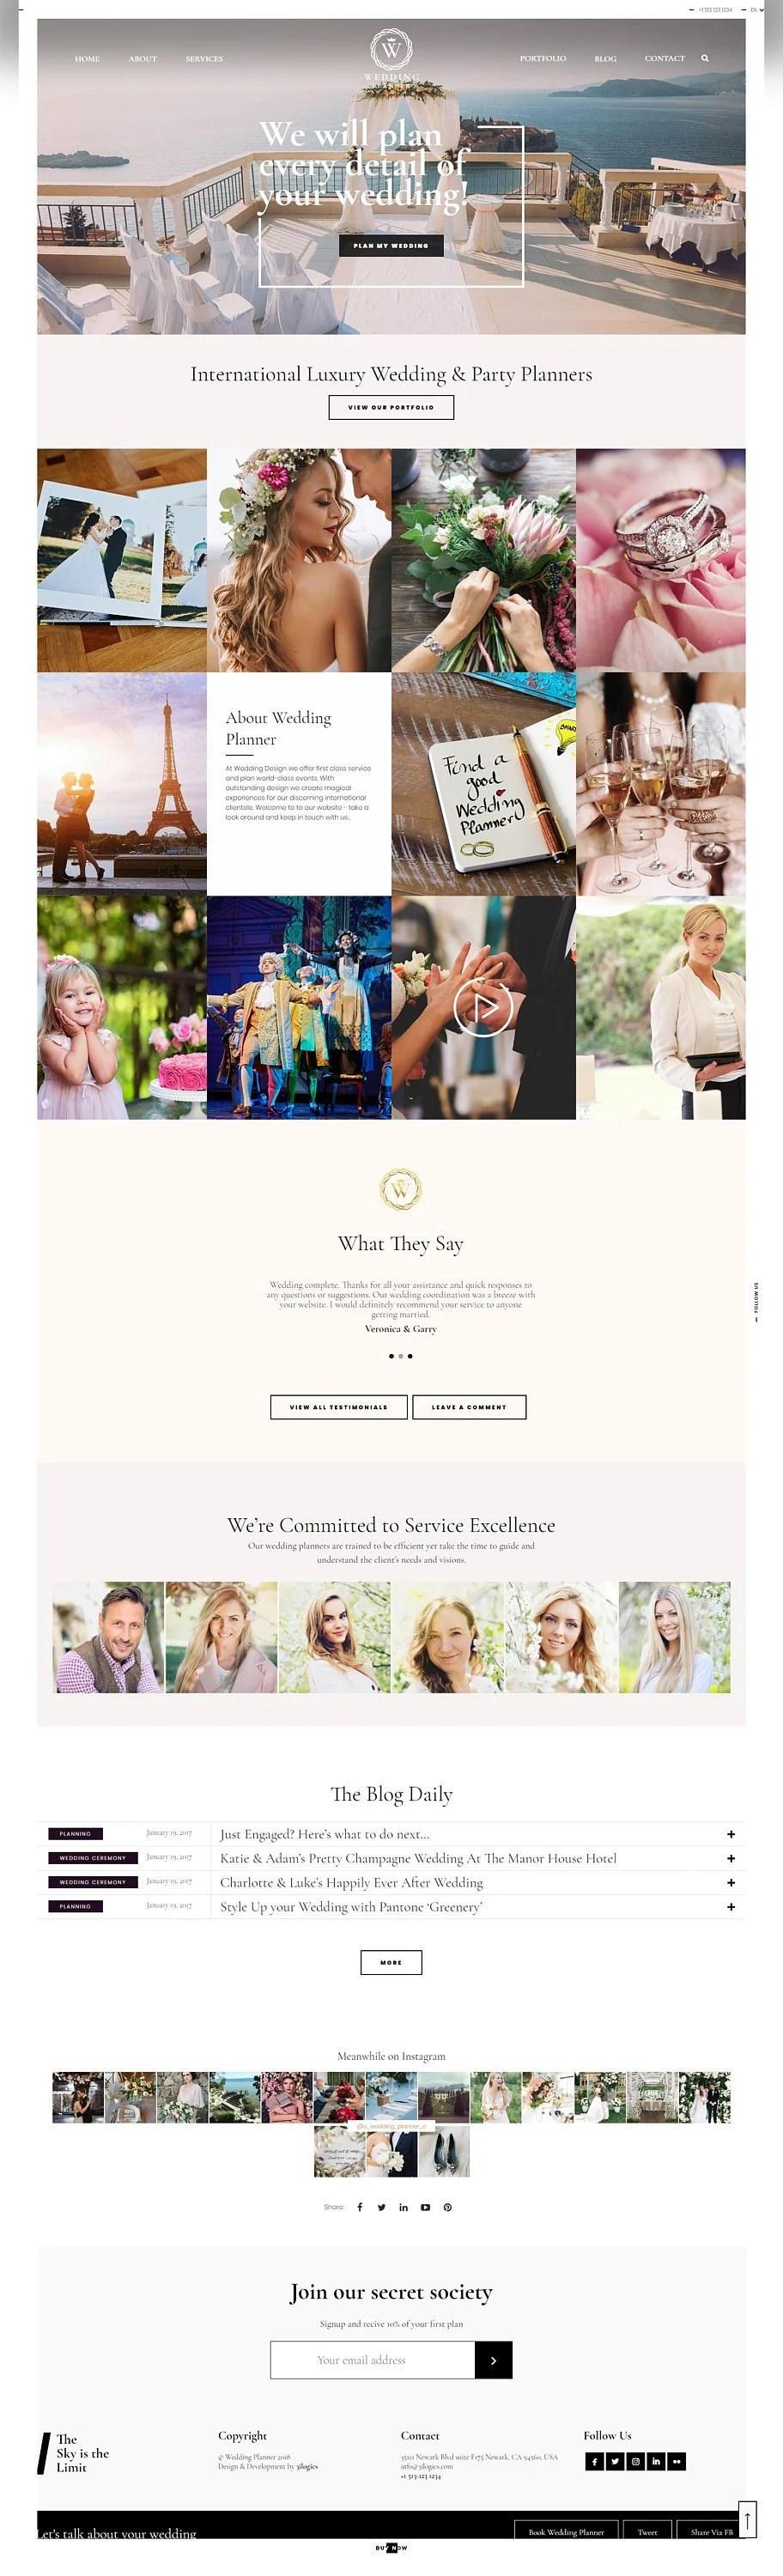 Most couples still send out fancy paper invitations, but even so, it's now popular to direct people to a website for more information and to rsvp. Wedding Website Template WordPress Design Wedding Website Etsy